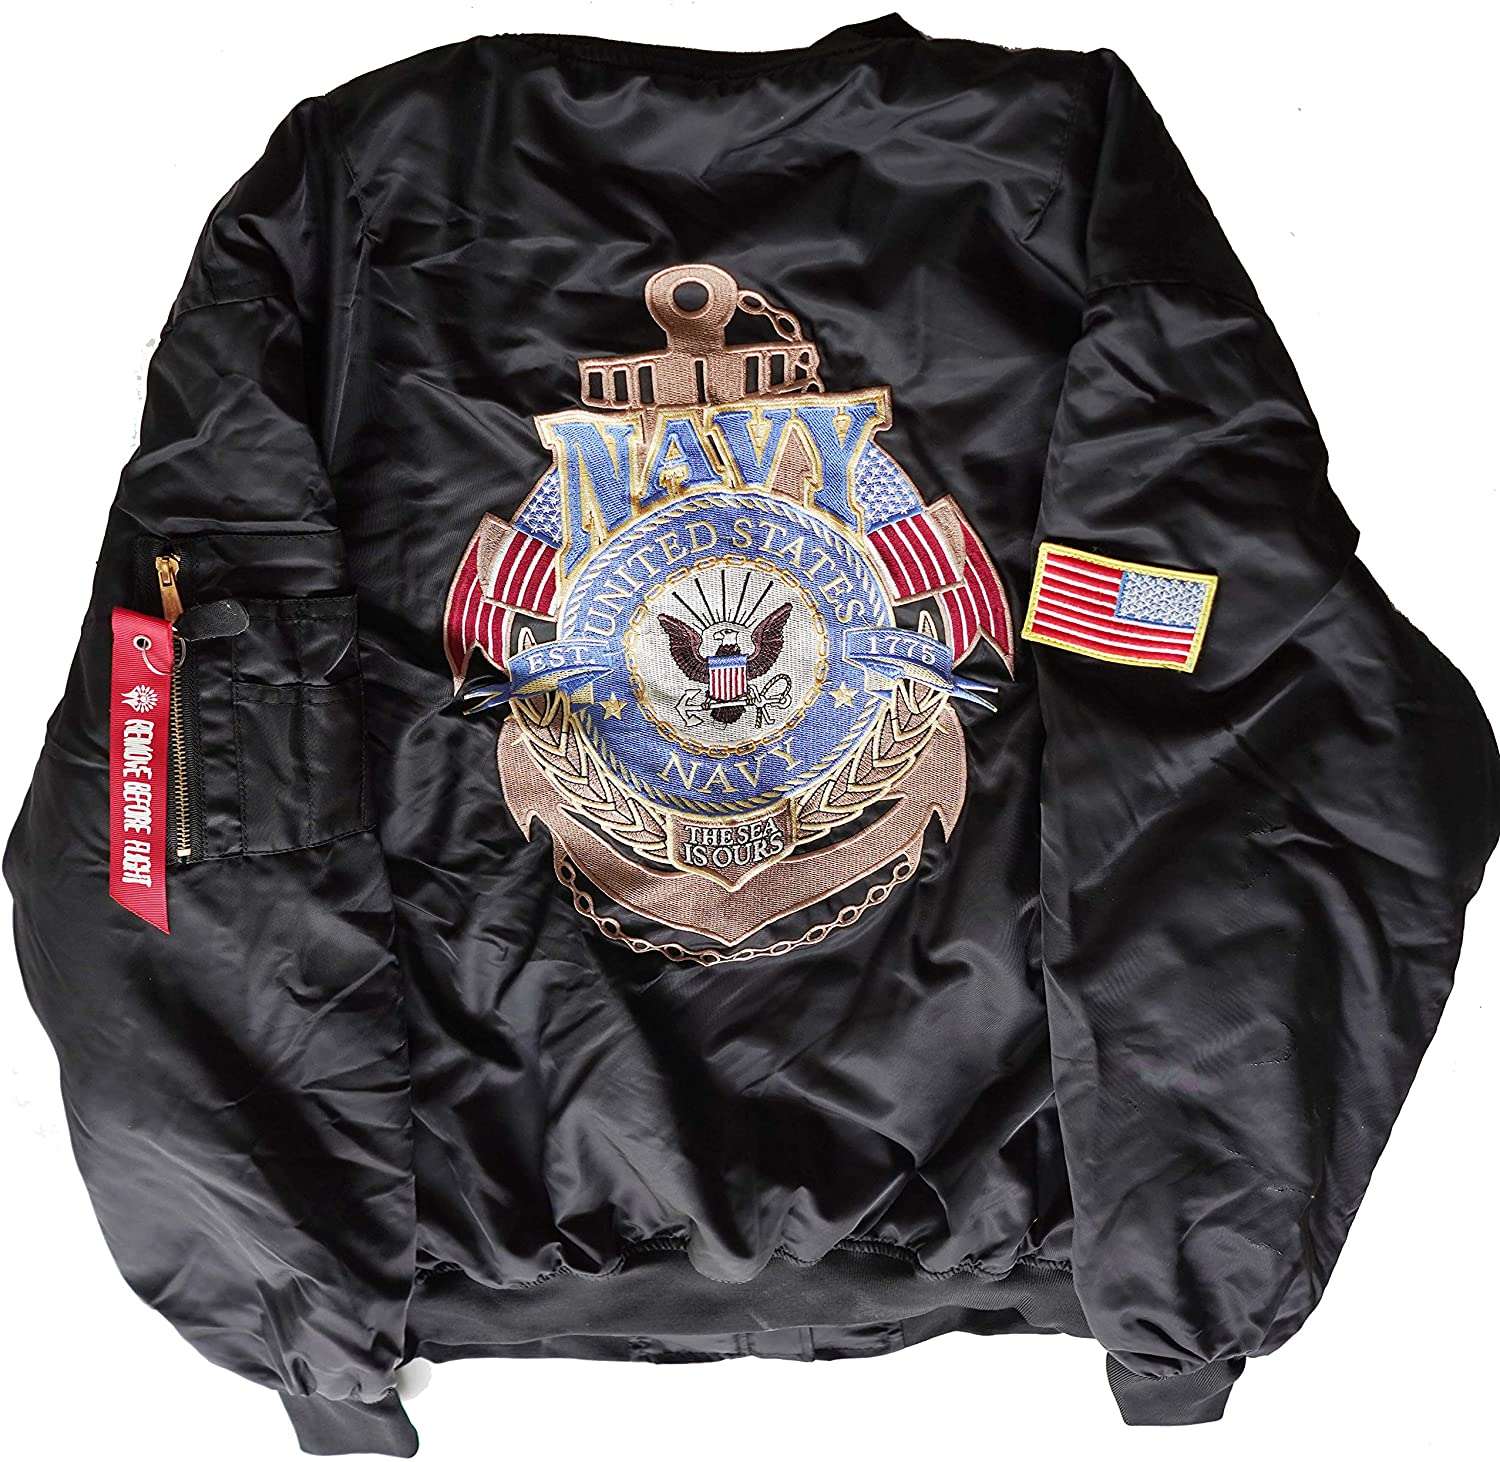 U.S. Navy EST 1775 The Sea is Ours MA-1 Flight Embroidered Bomber Jacket